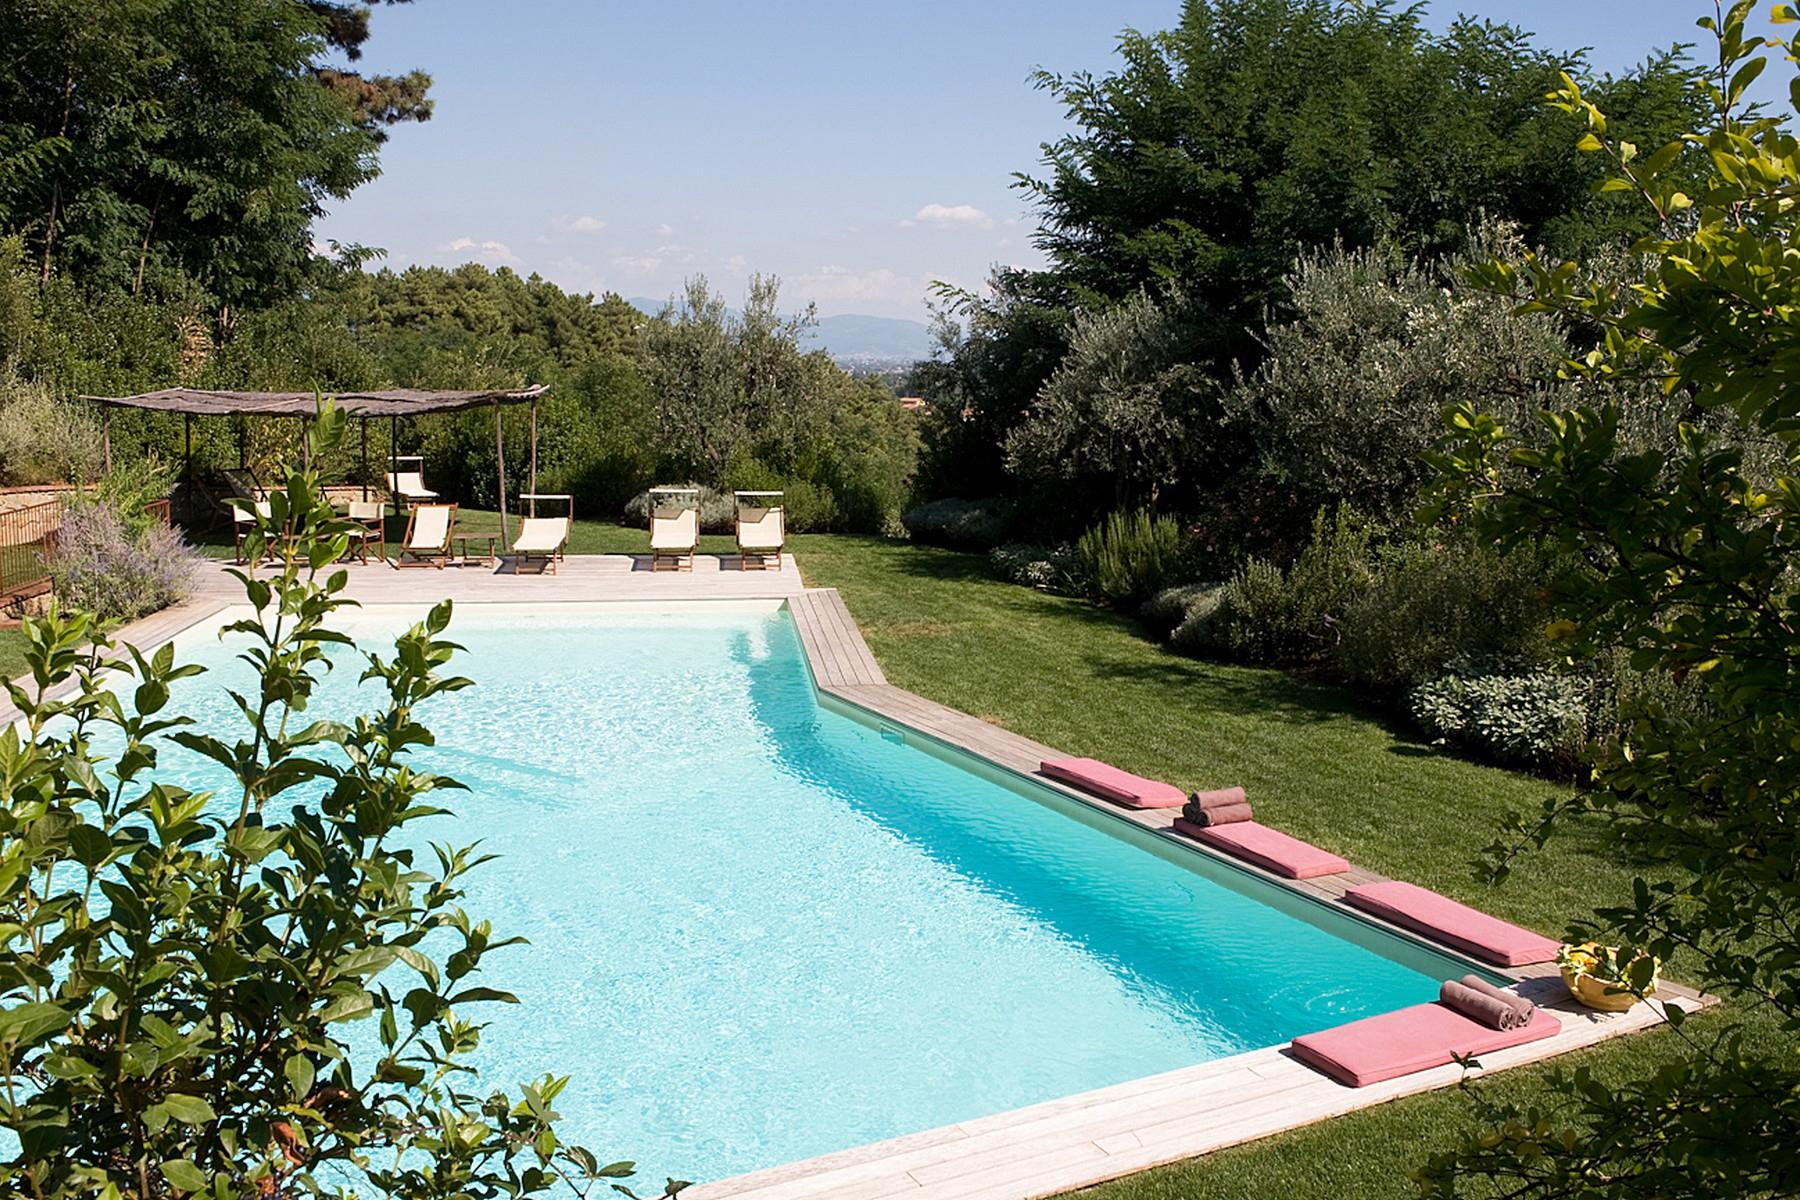 Farmhouse for sale in the Tuscan hills - 18